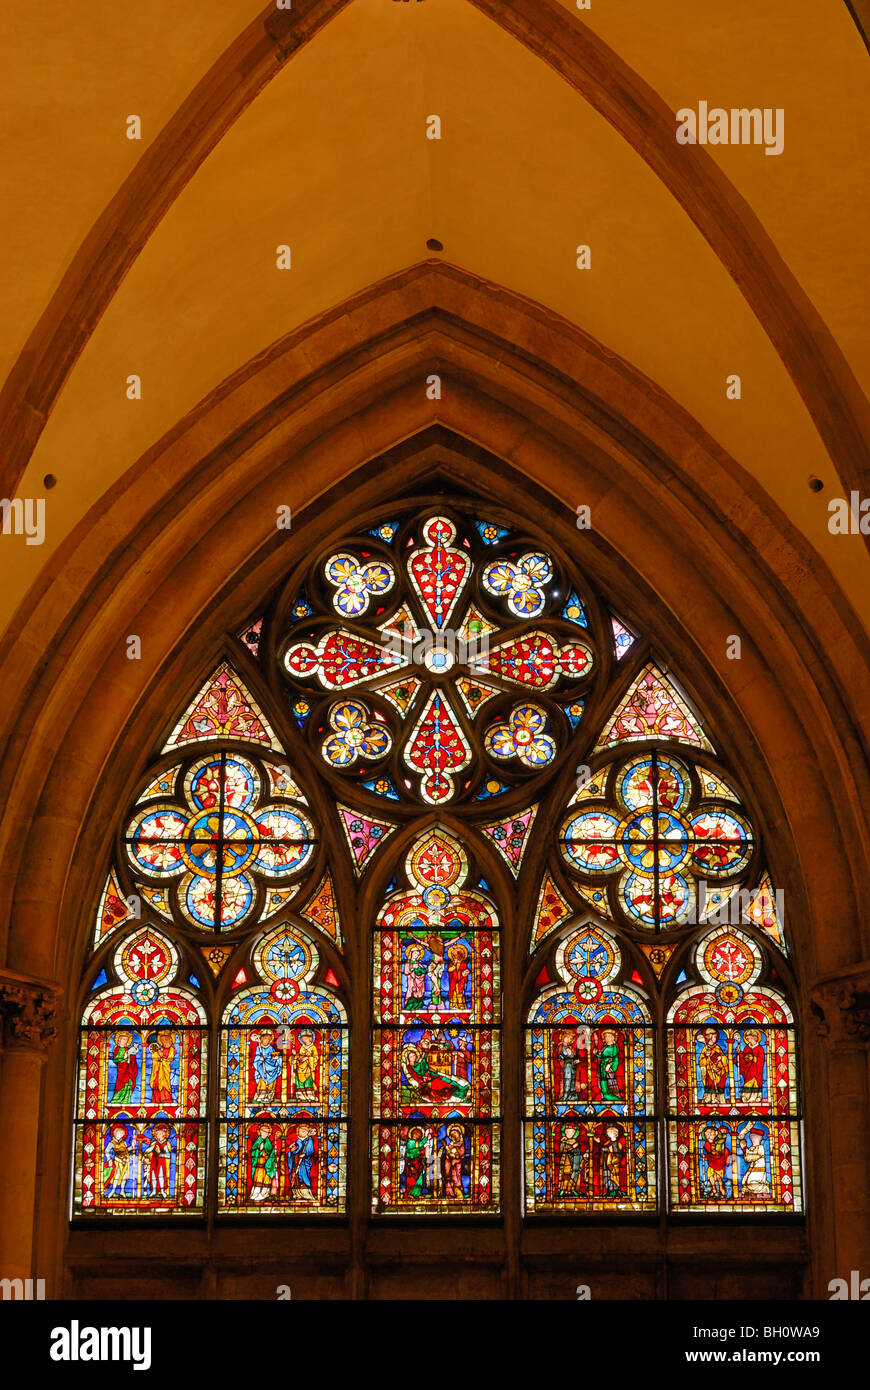 Colored window pane, Regensburg cathedral, Regensburg, Upper Palatinate, Bavaria, Germany - Stock Image